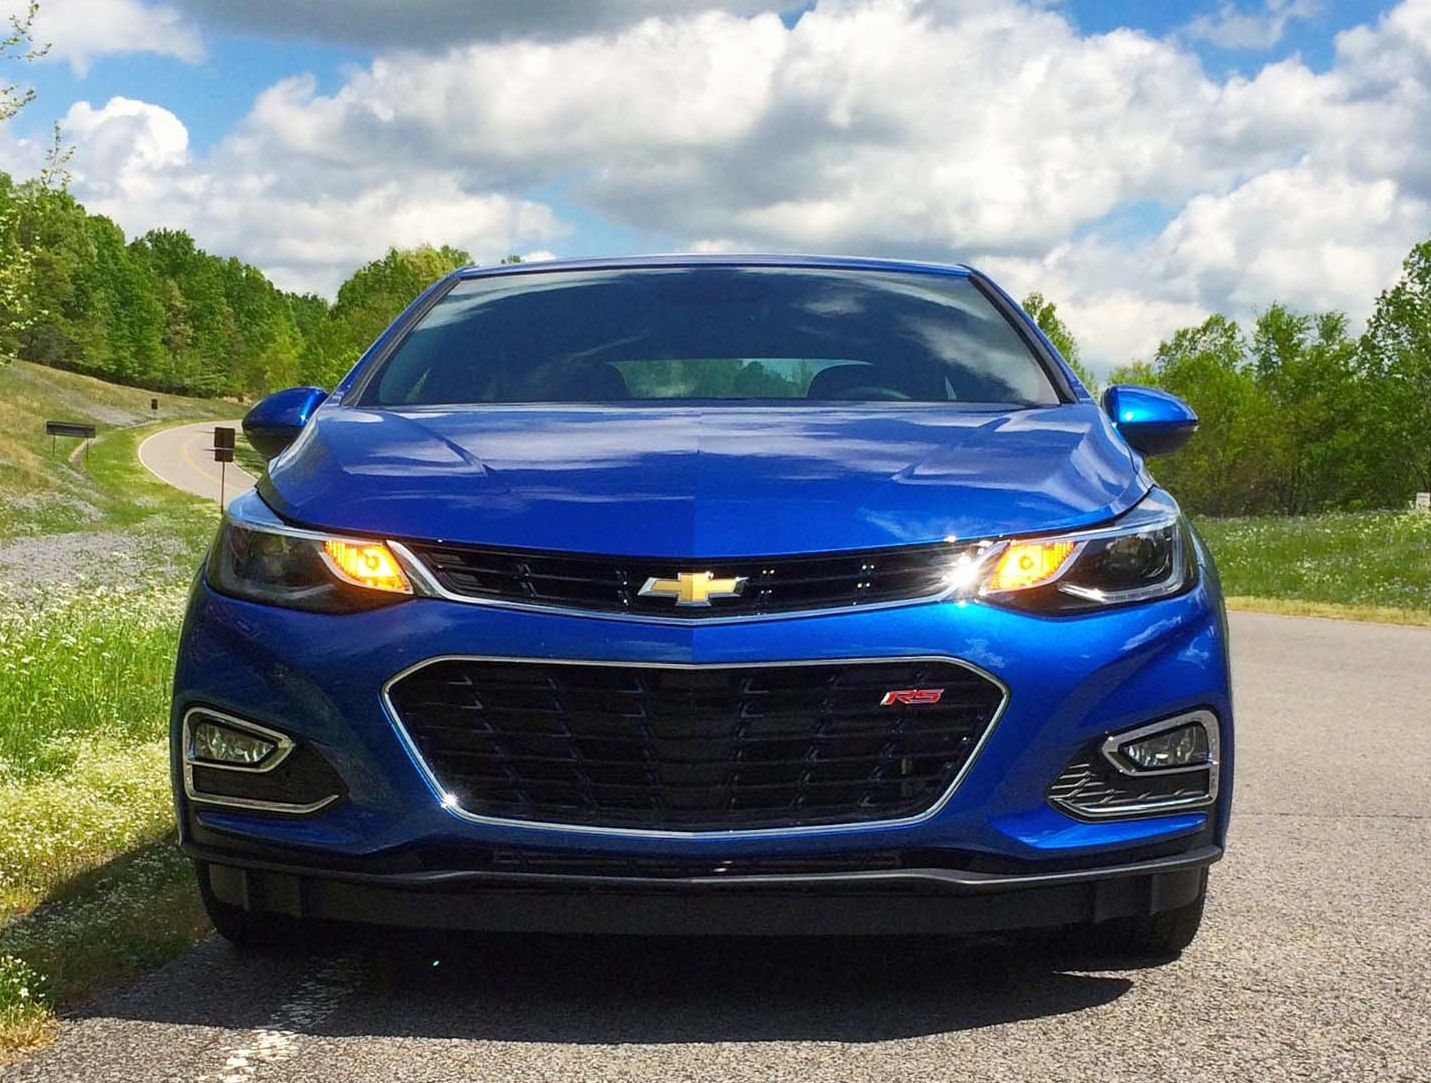 2018 Chevy Cruze Free 1080p Cool Car New HD WallpapersPictures ...